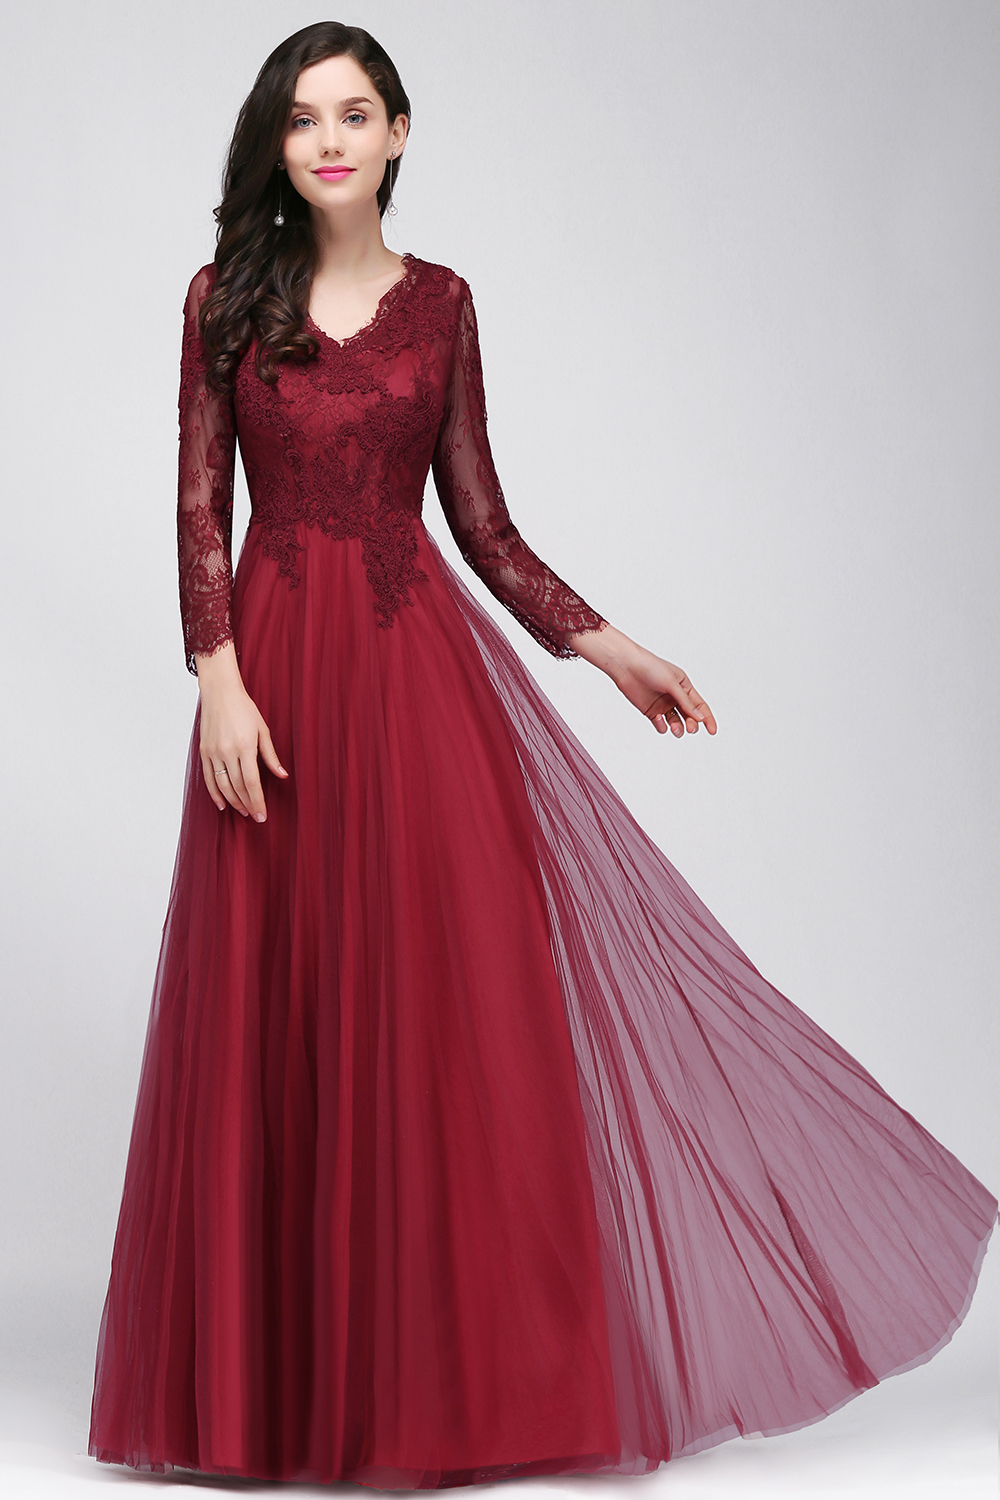 Long Sleeves Lace Satin Off-the-Shoulder Prom Dresses ... |Formal Lace Dress With Sleeves